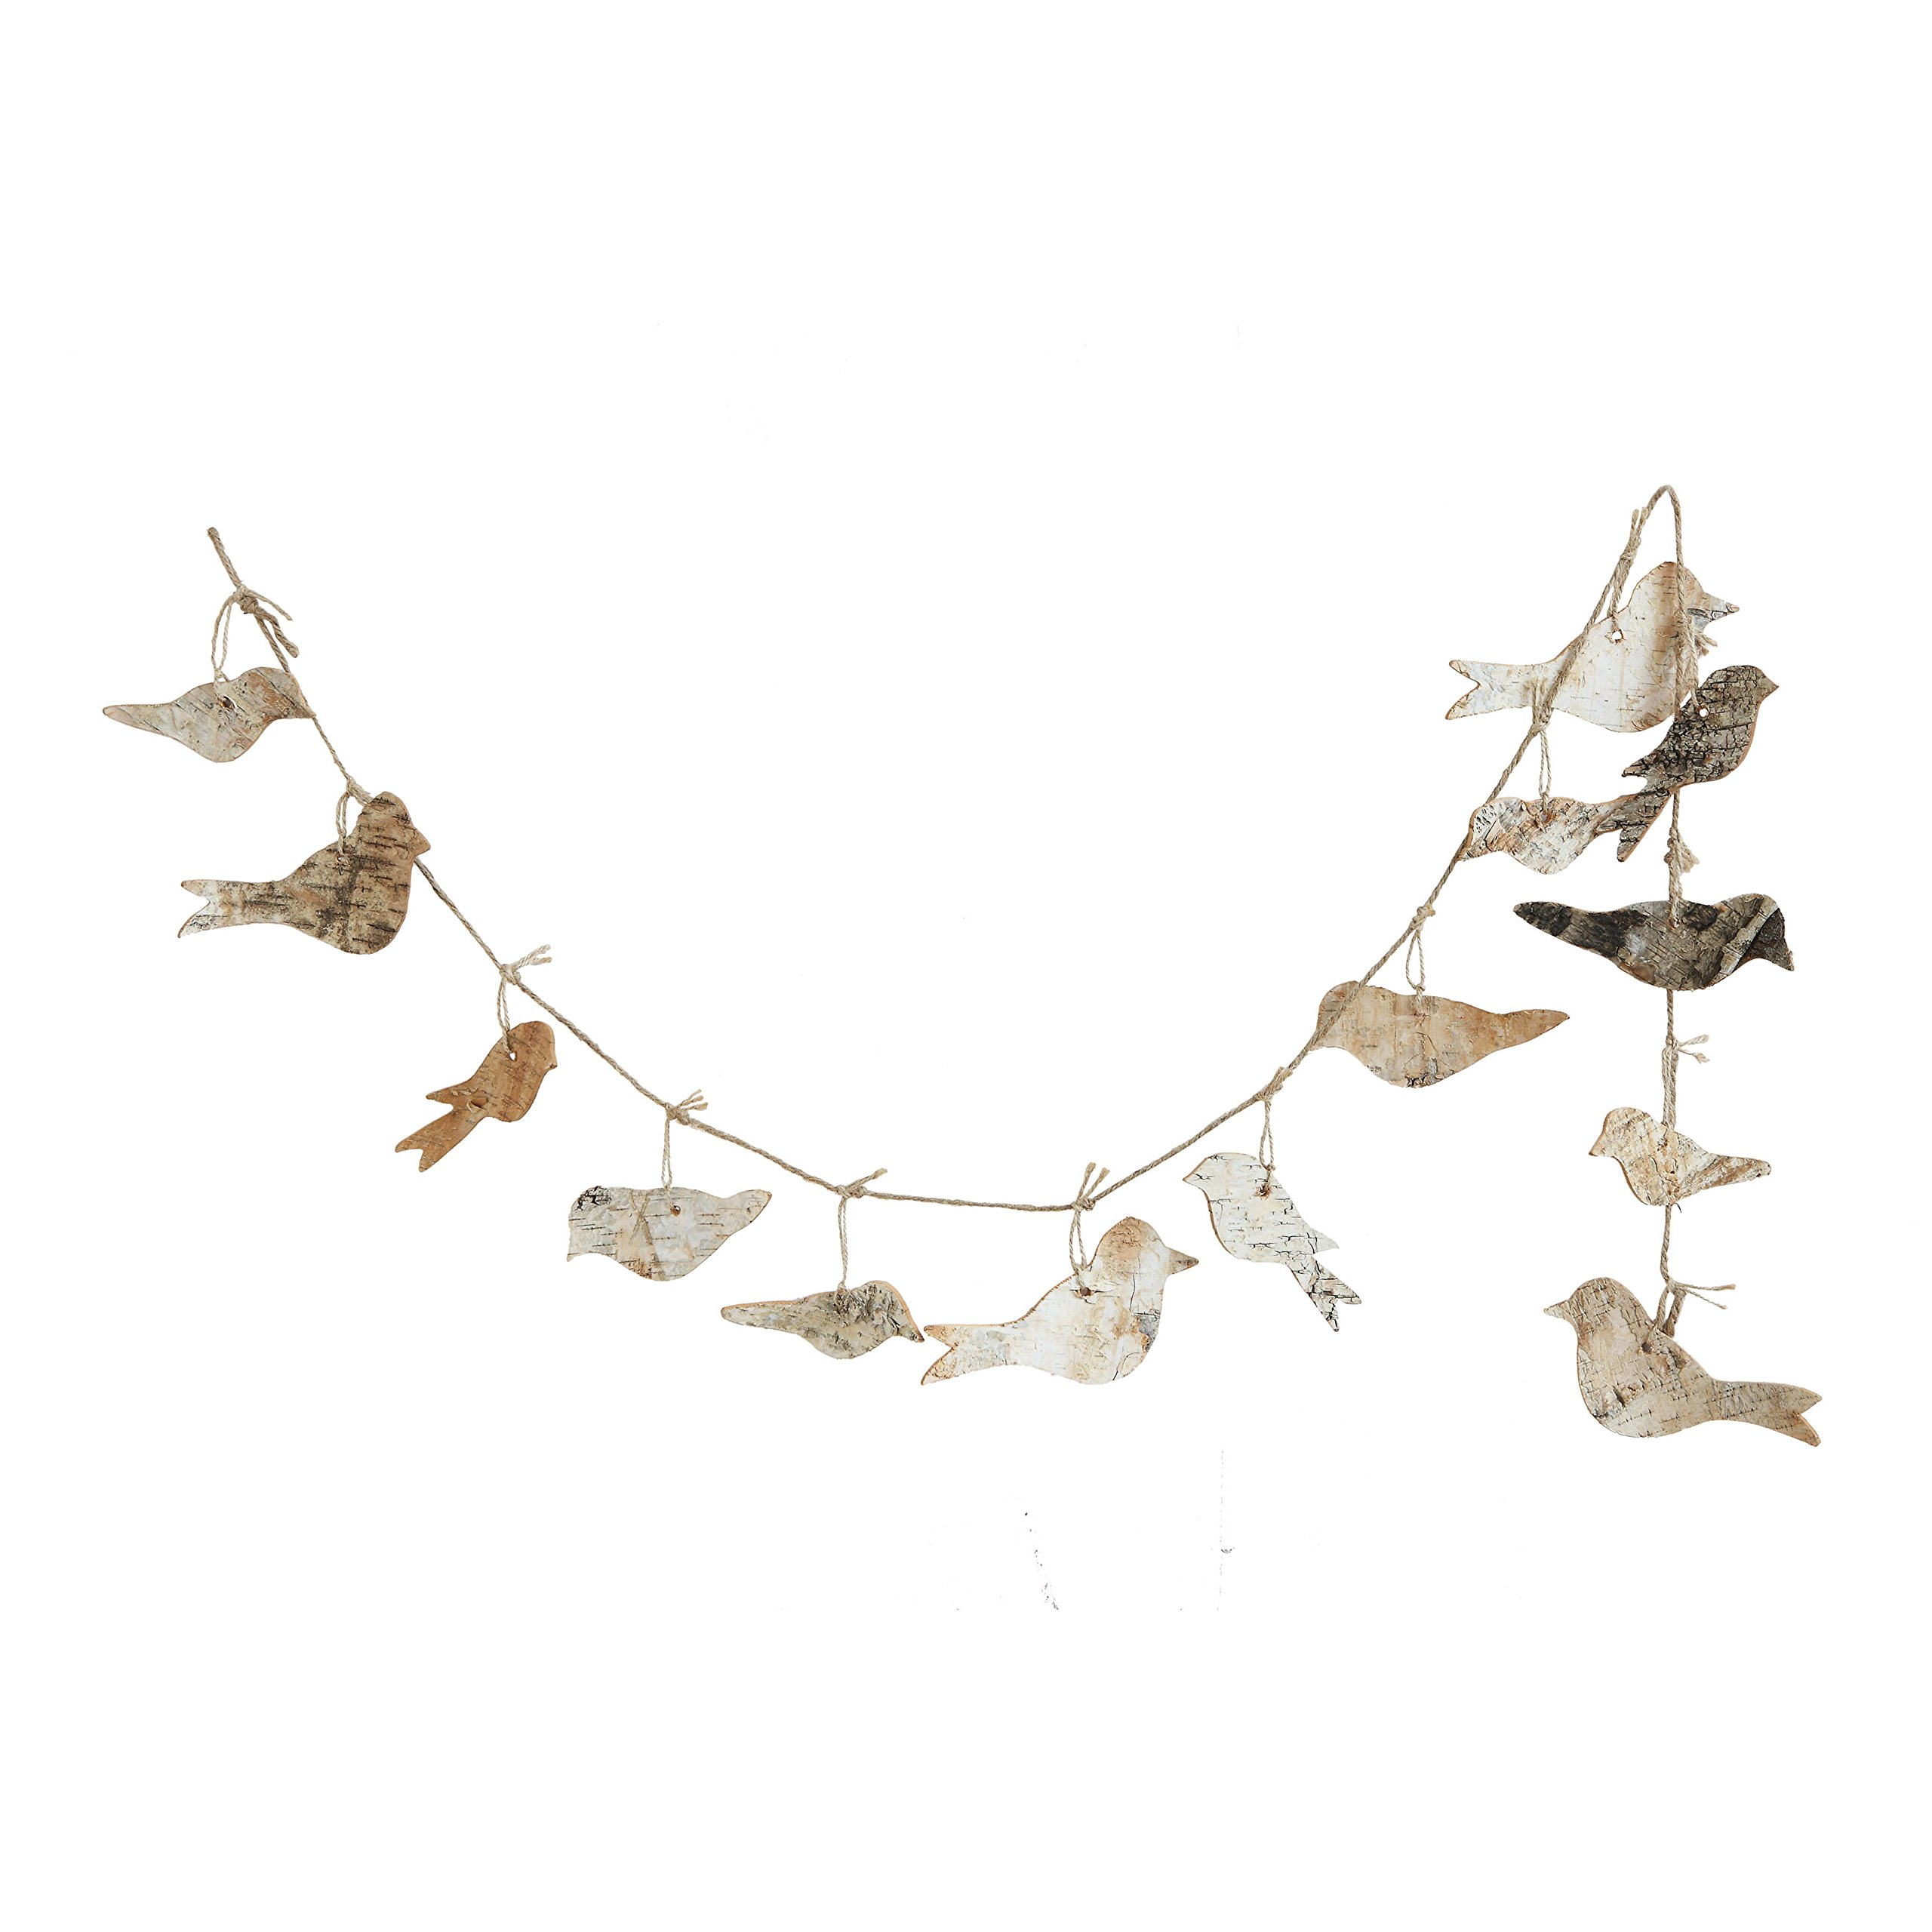 Creative Co-op XM0909 Natural Lodge 72'' Birch Bark Bird Garland